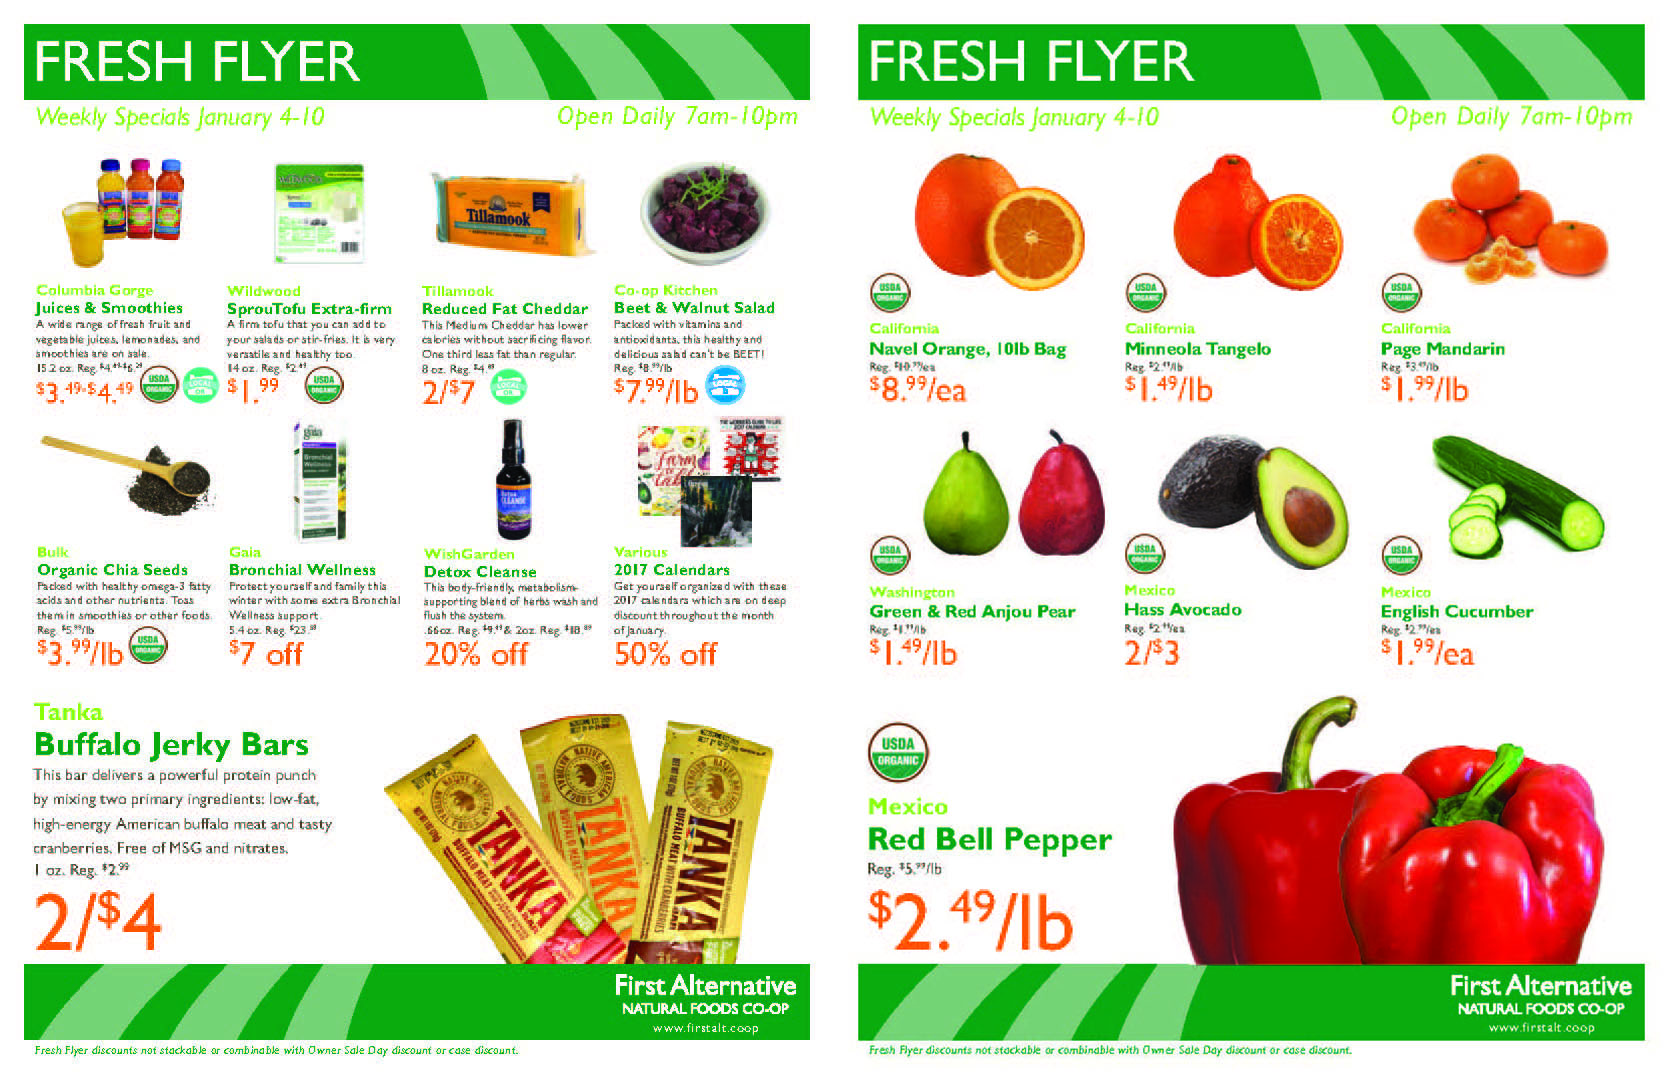 First Alternative Co-op Fresh Flyer Jan. 4-10